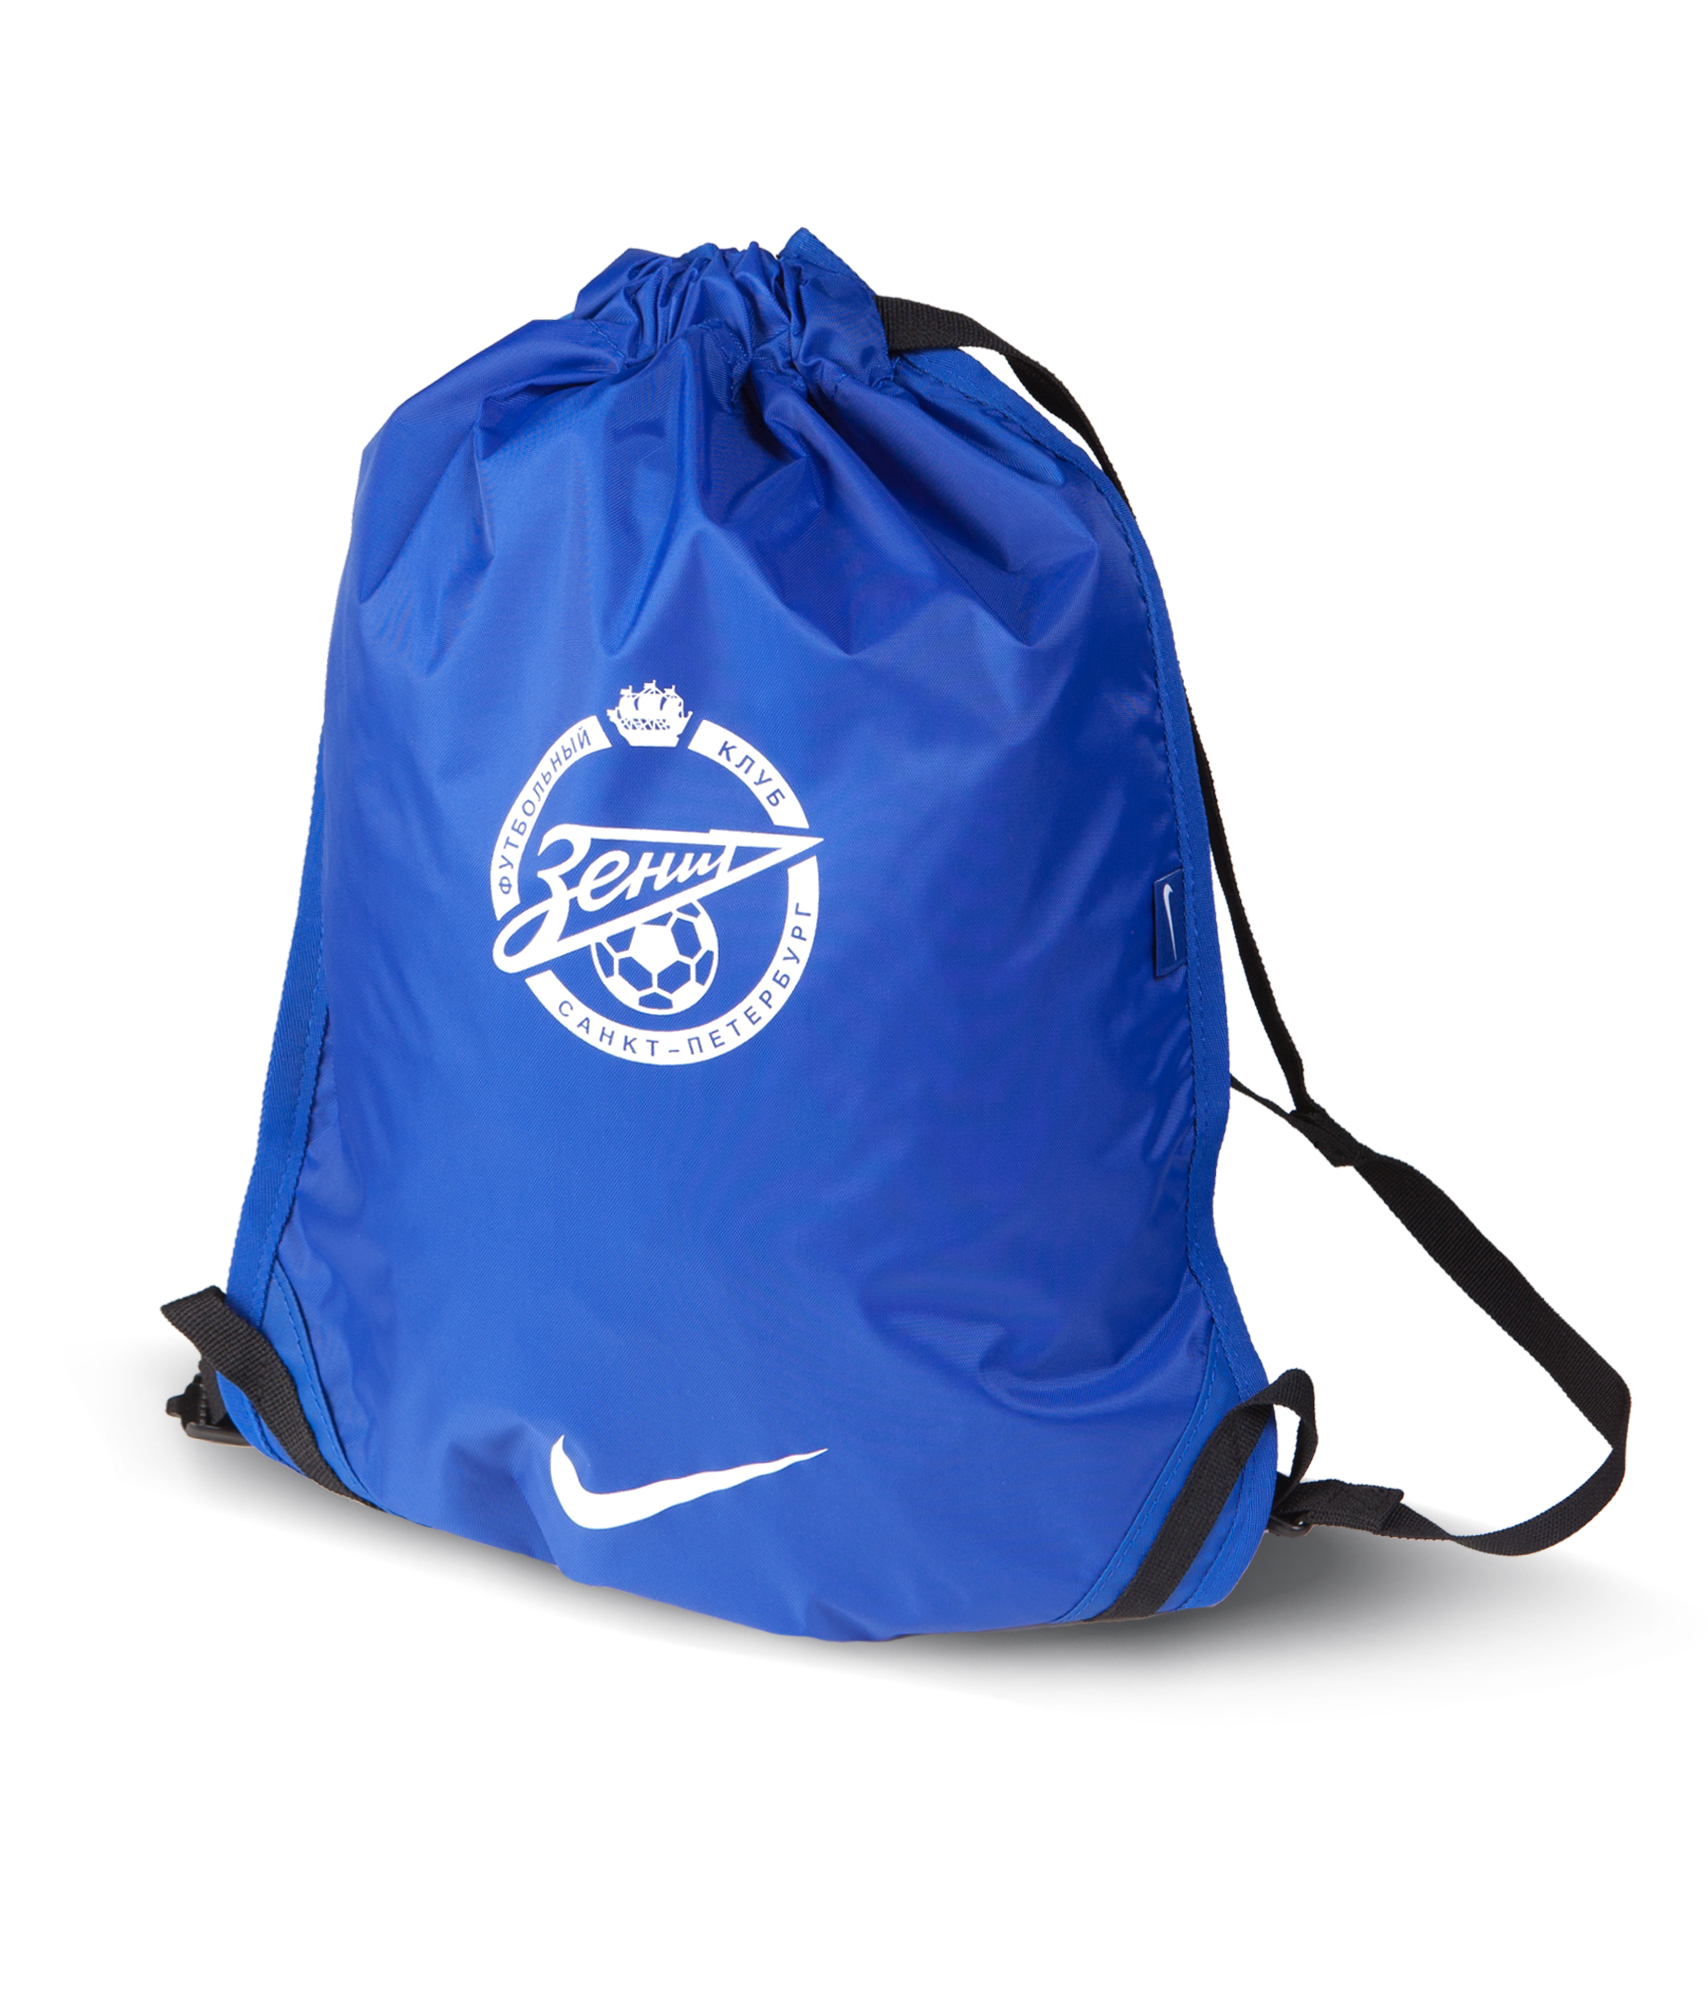 Сумка NIKE FOOTBALL GYMSACK, Цвет-Синий, Размер-MISC